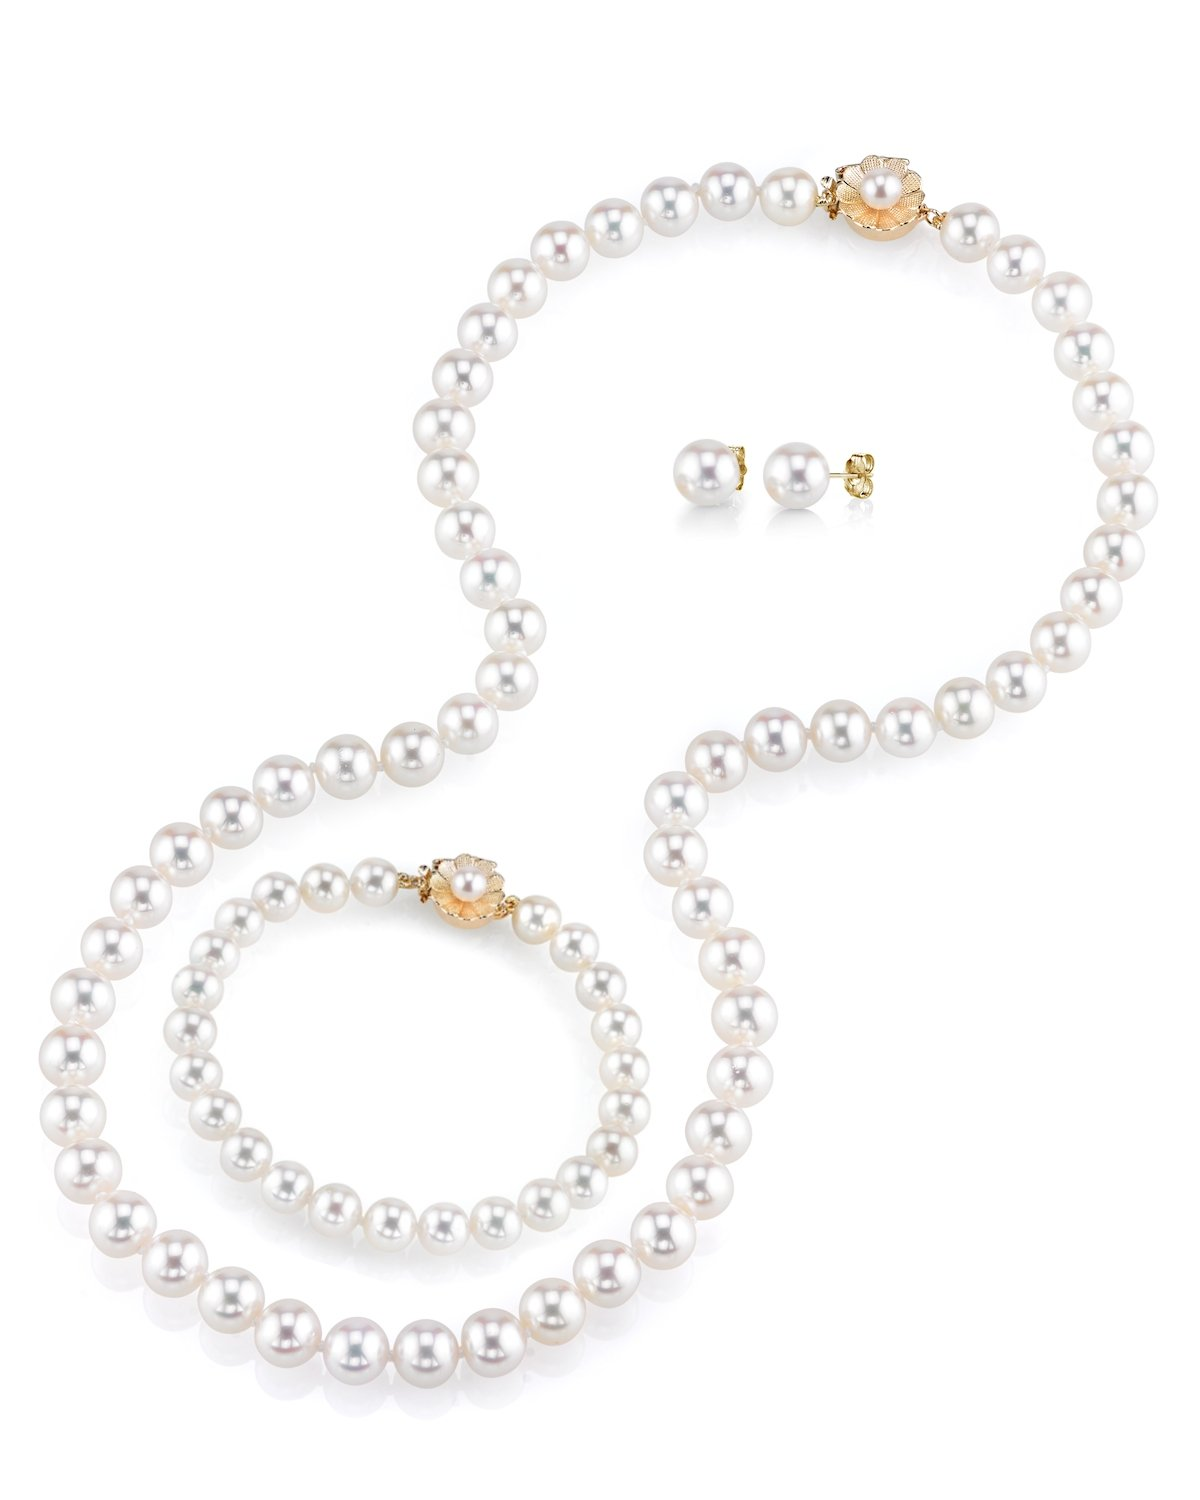 THE PEARL SOURCE AAAA Quality 8-9mm Round White Freshwater Cultured Pearl Necklace, Bracelet & Earrings Set with 14K Yellow Gold Flower Clasp for Women